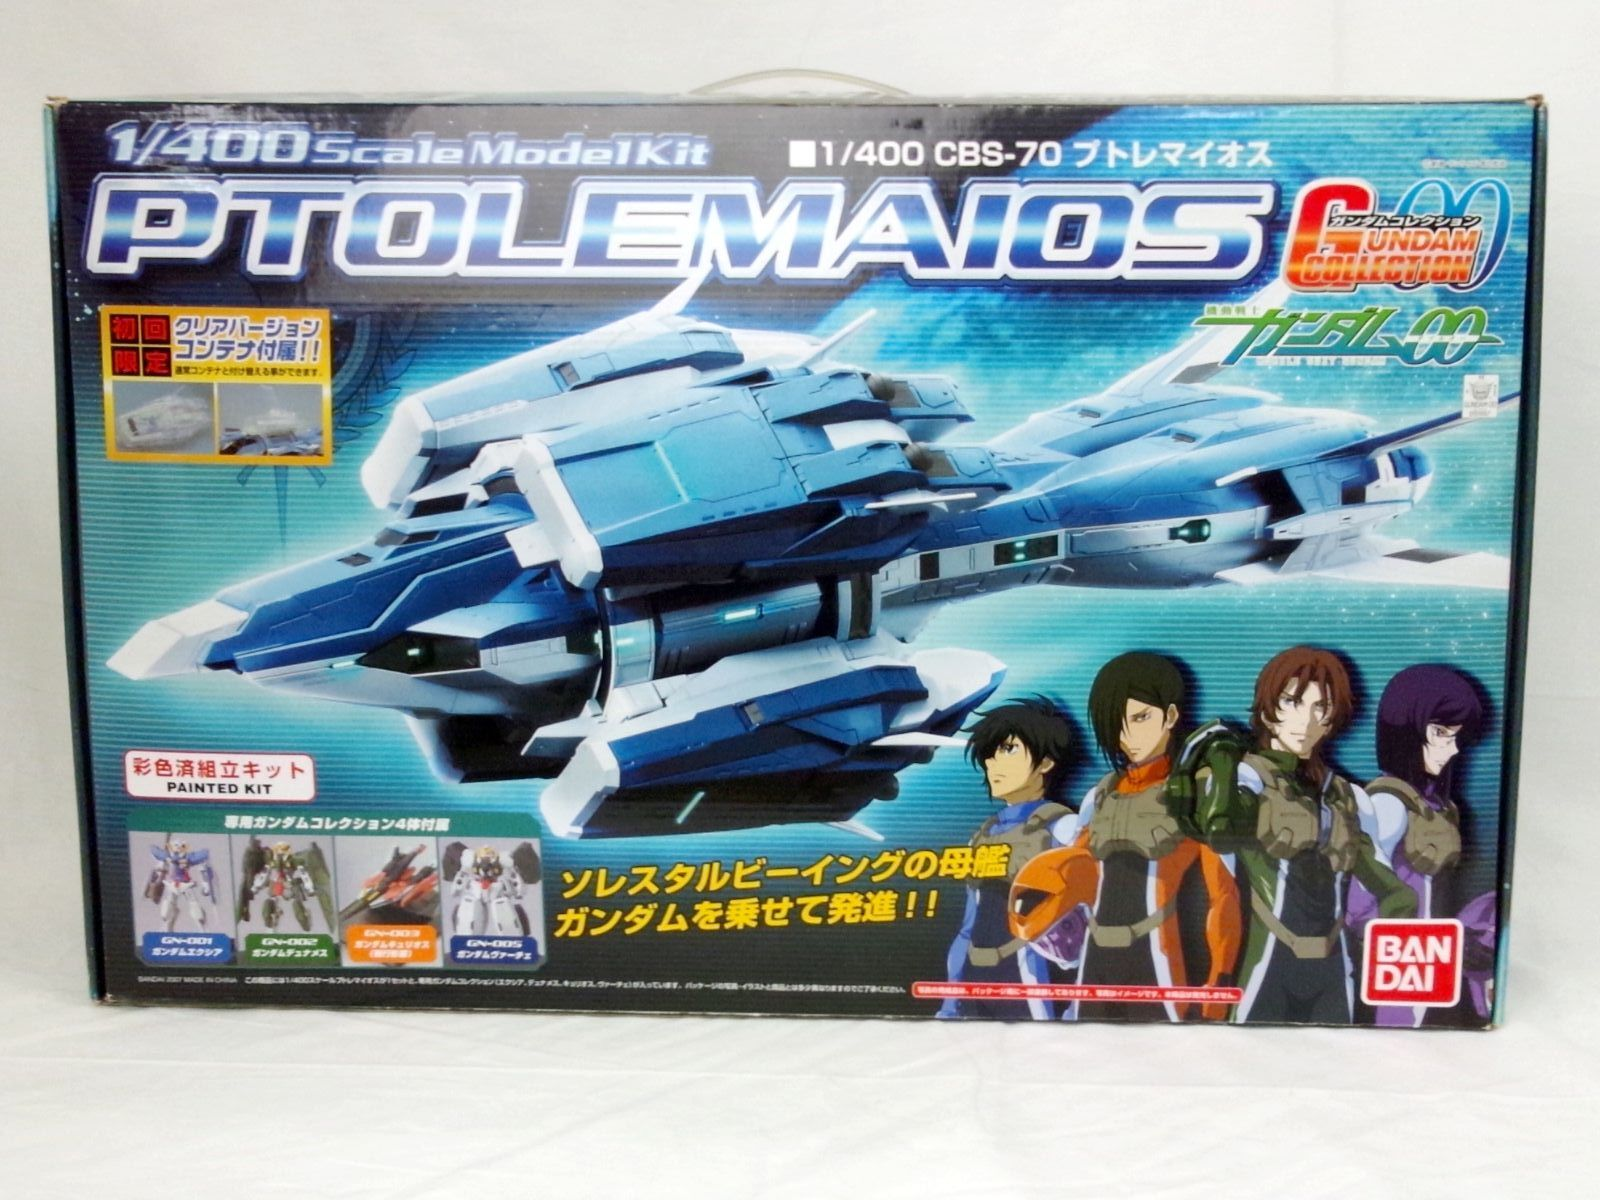 mobile suit Gundam oo 1/400 Ptolemy [First Press Edition] Bandai From Japan